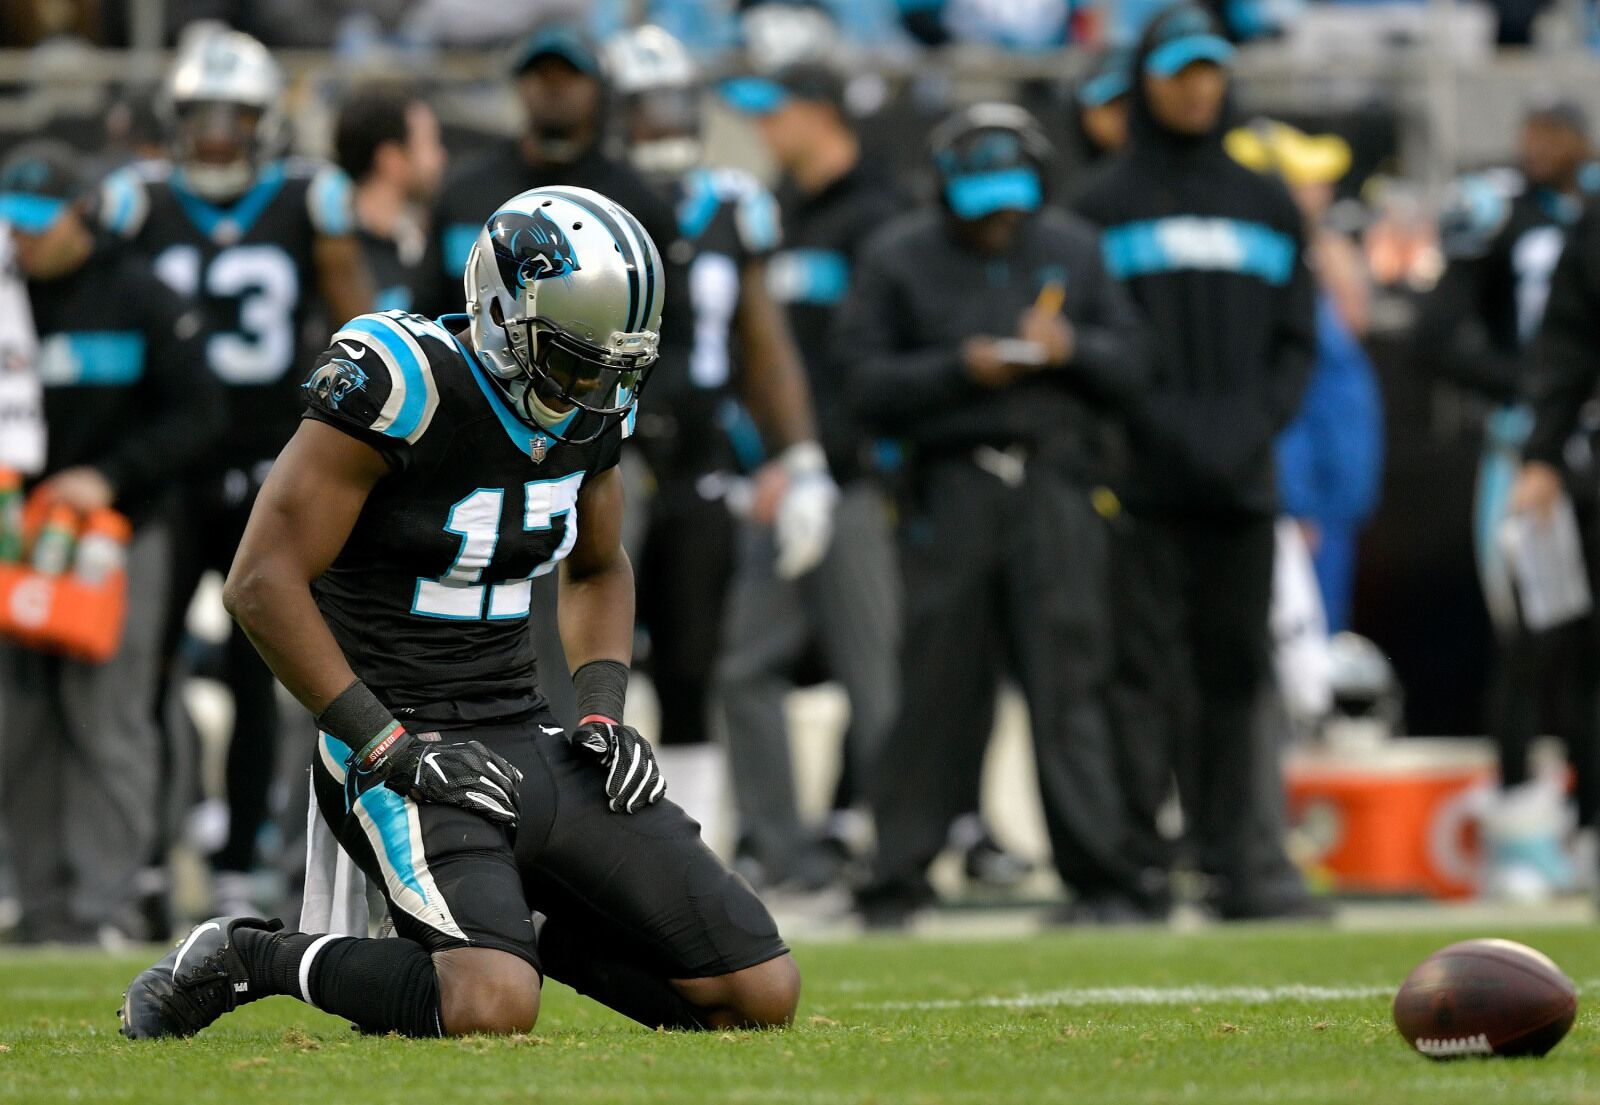 Devin Funchess wants to remain in Carolina, and that is good news